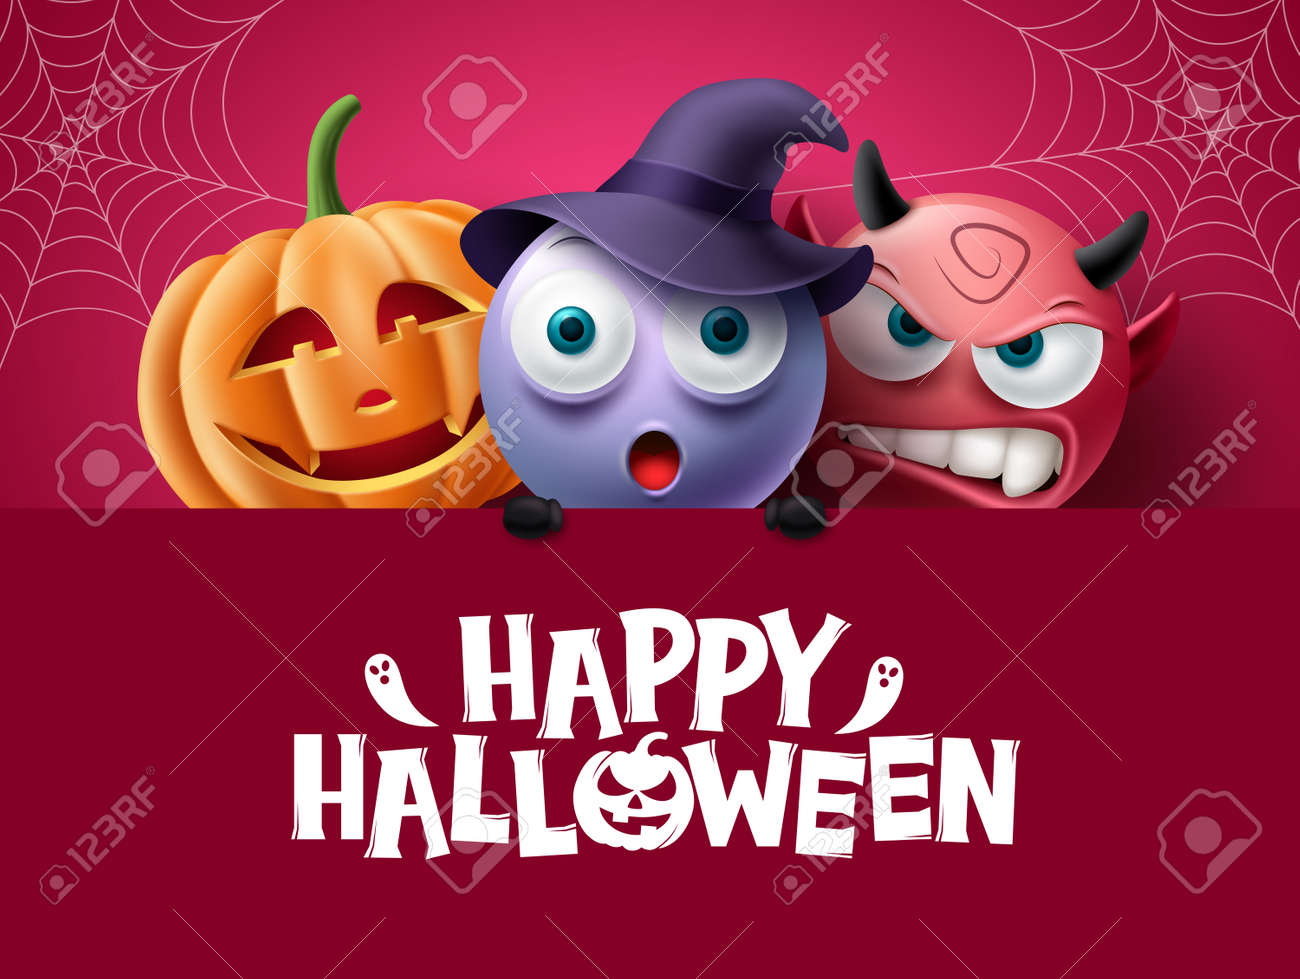 Halloween characters background design. Happy halloween text in red space with creepy, spooky and scary characters for horror party decoration. Vector illustration. - 172903071